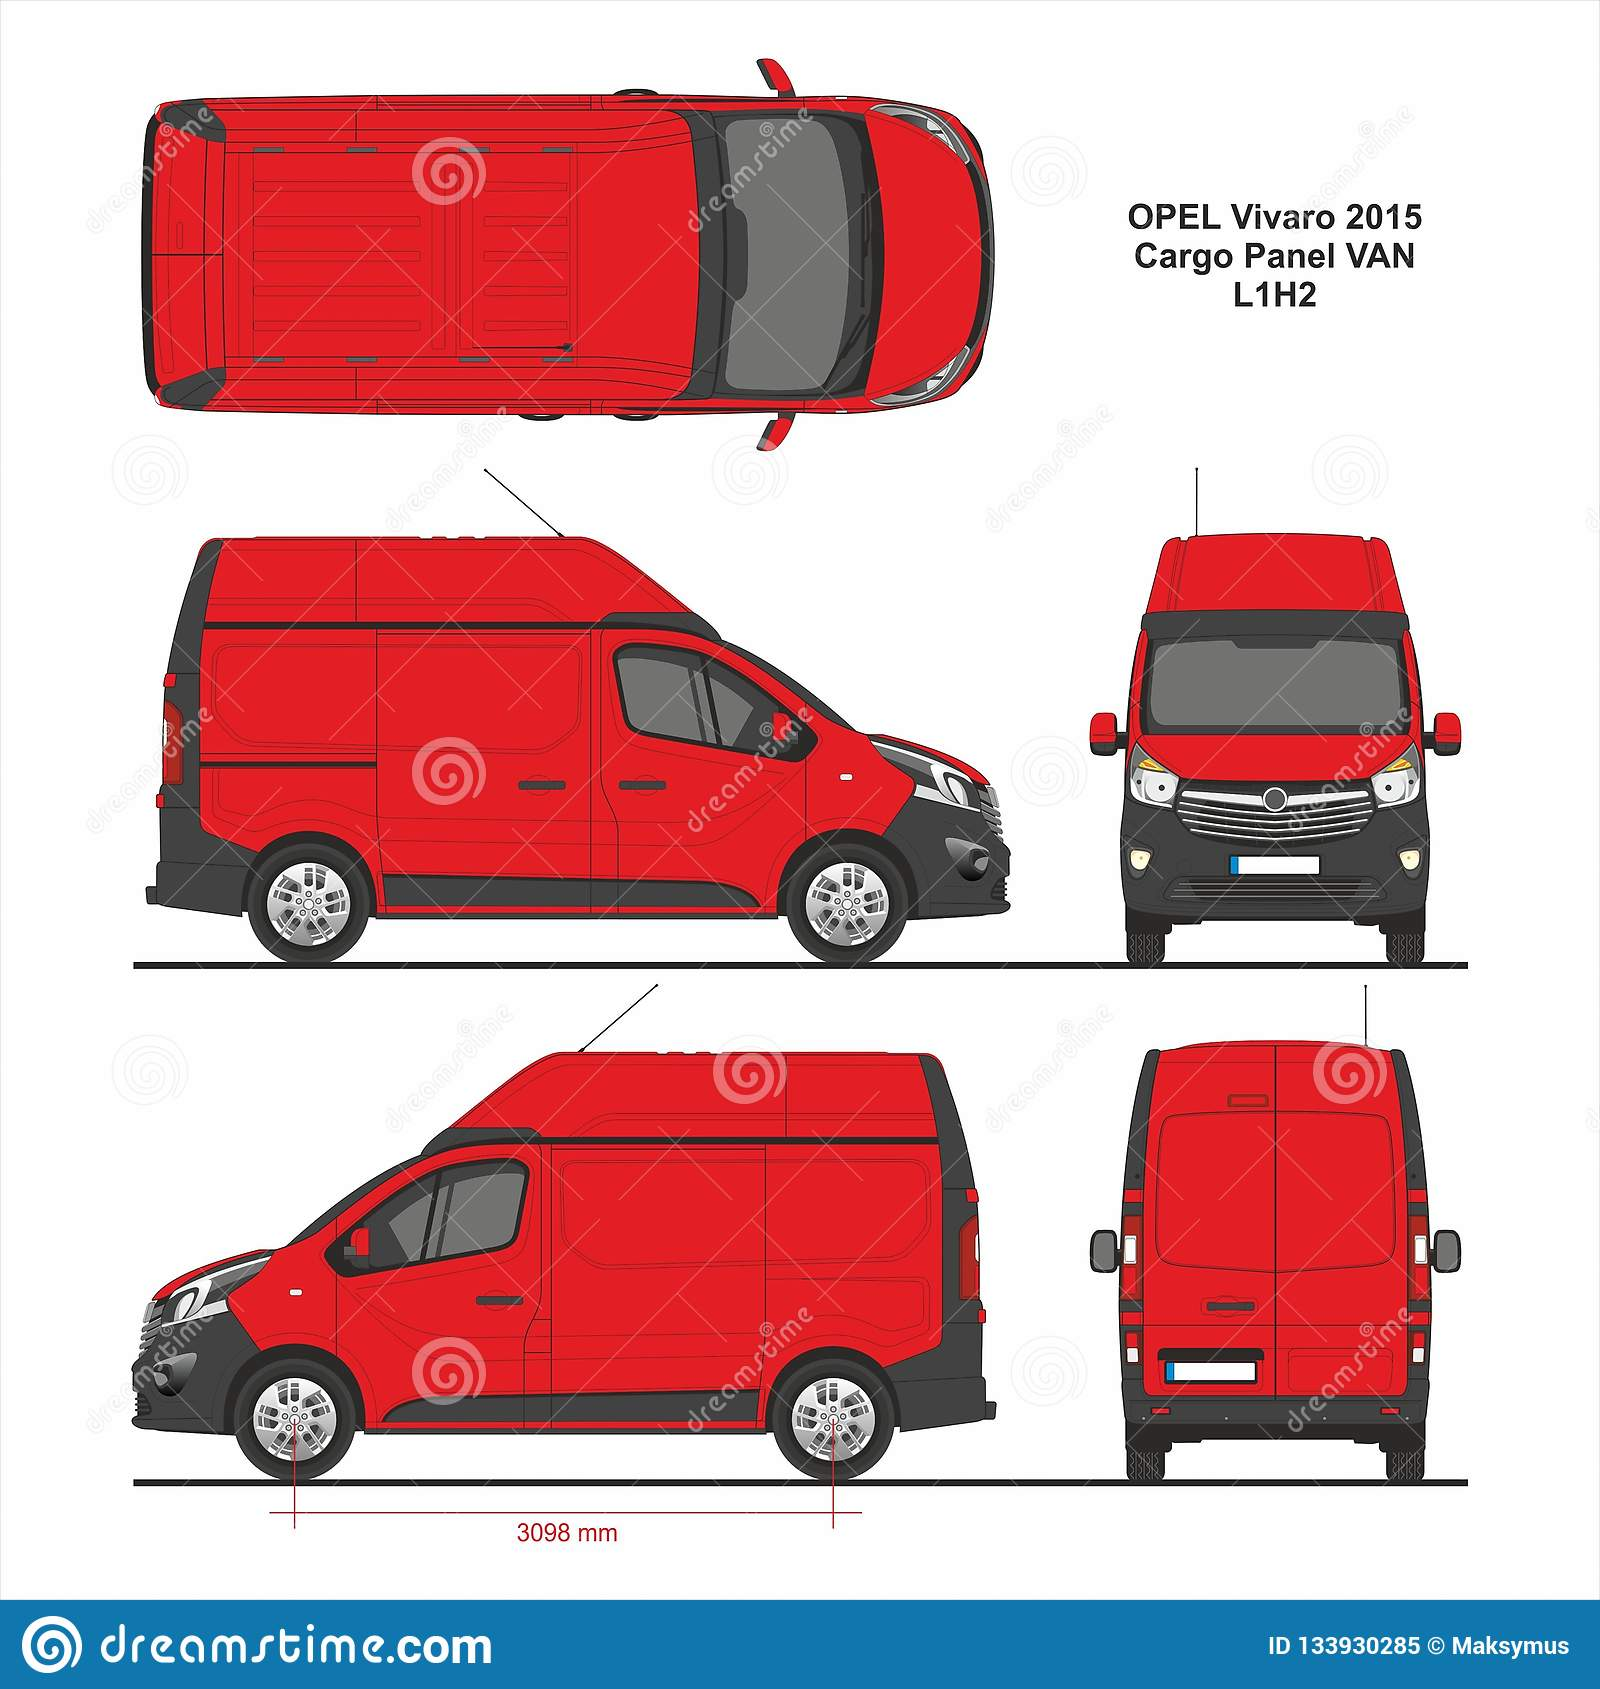 4322e5cdf7 Opel Vivaro Cargo Panel Van L1H2 Swing Rear Door 2015 detailed template for  design and production of vehicle wraps scale 1 to 10